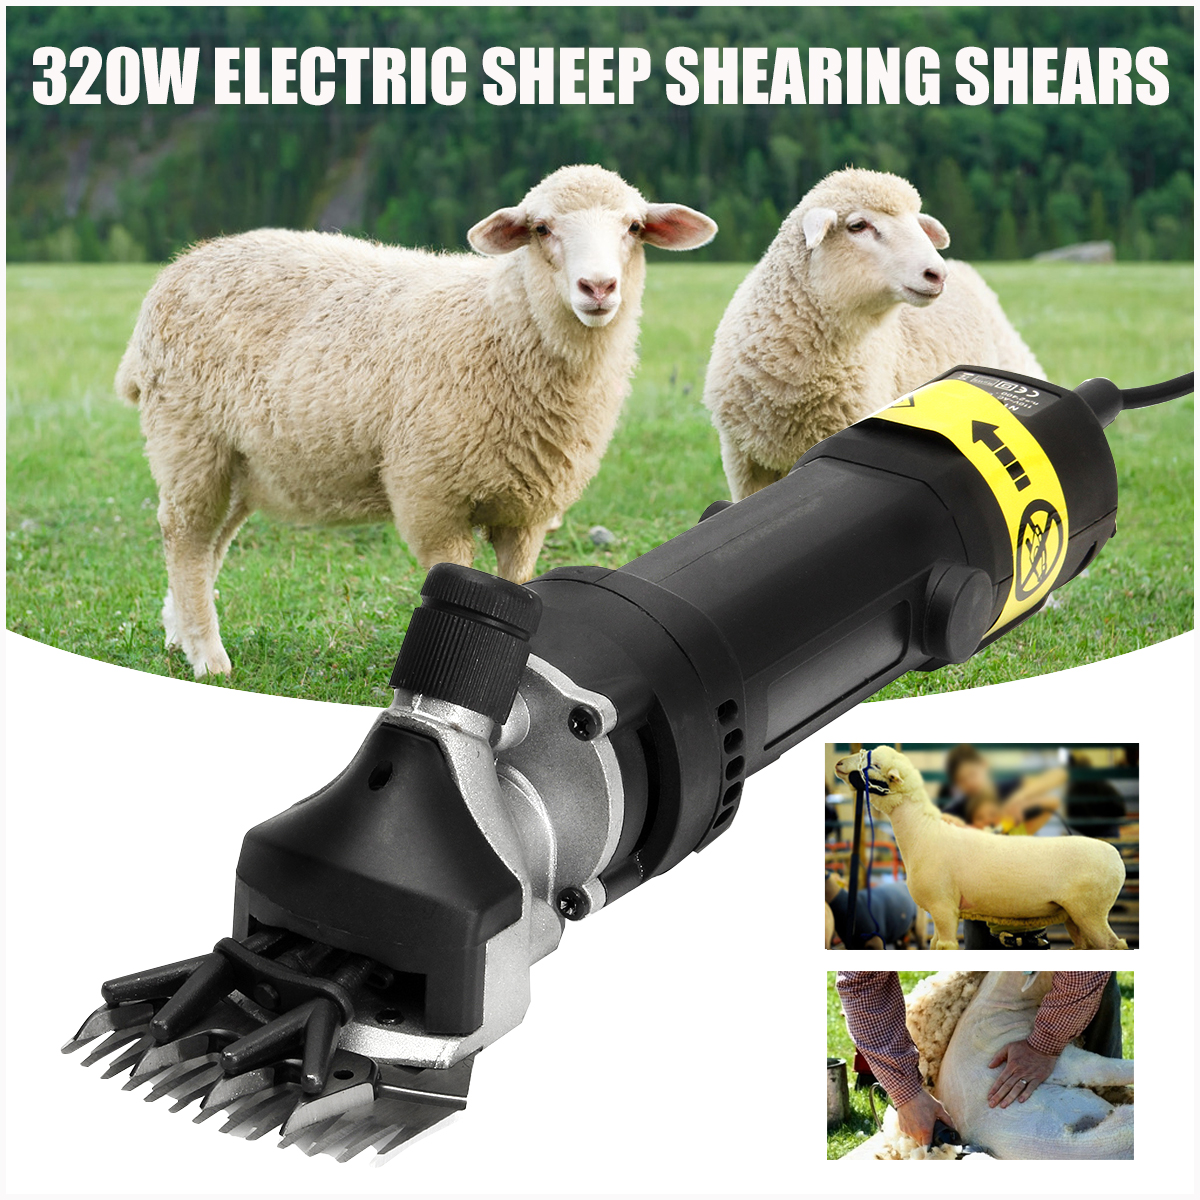 Electric Shearing Machine For sheep Goat Clipper Sheep Shears Wool Shearing sheep p